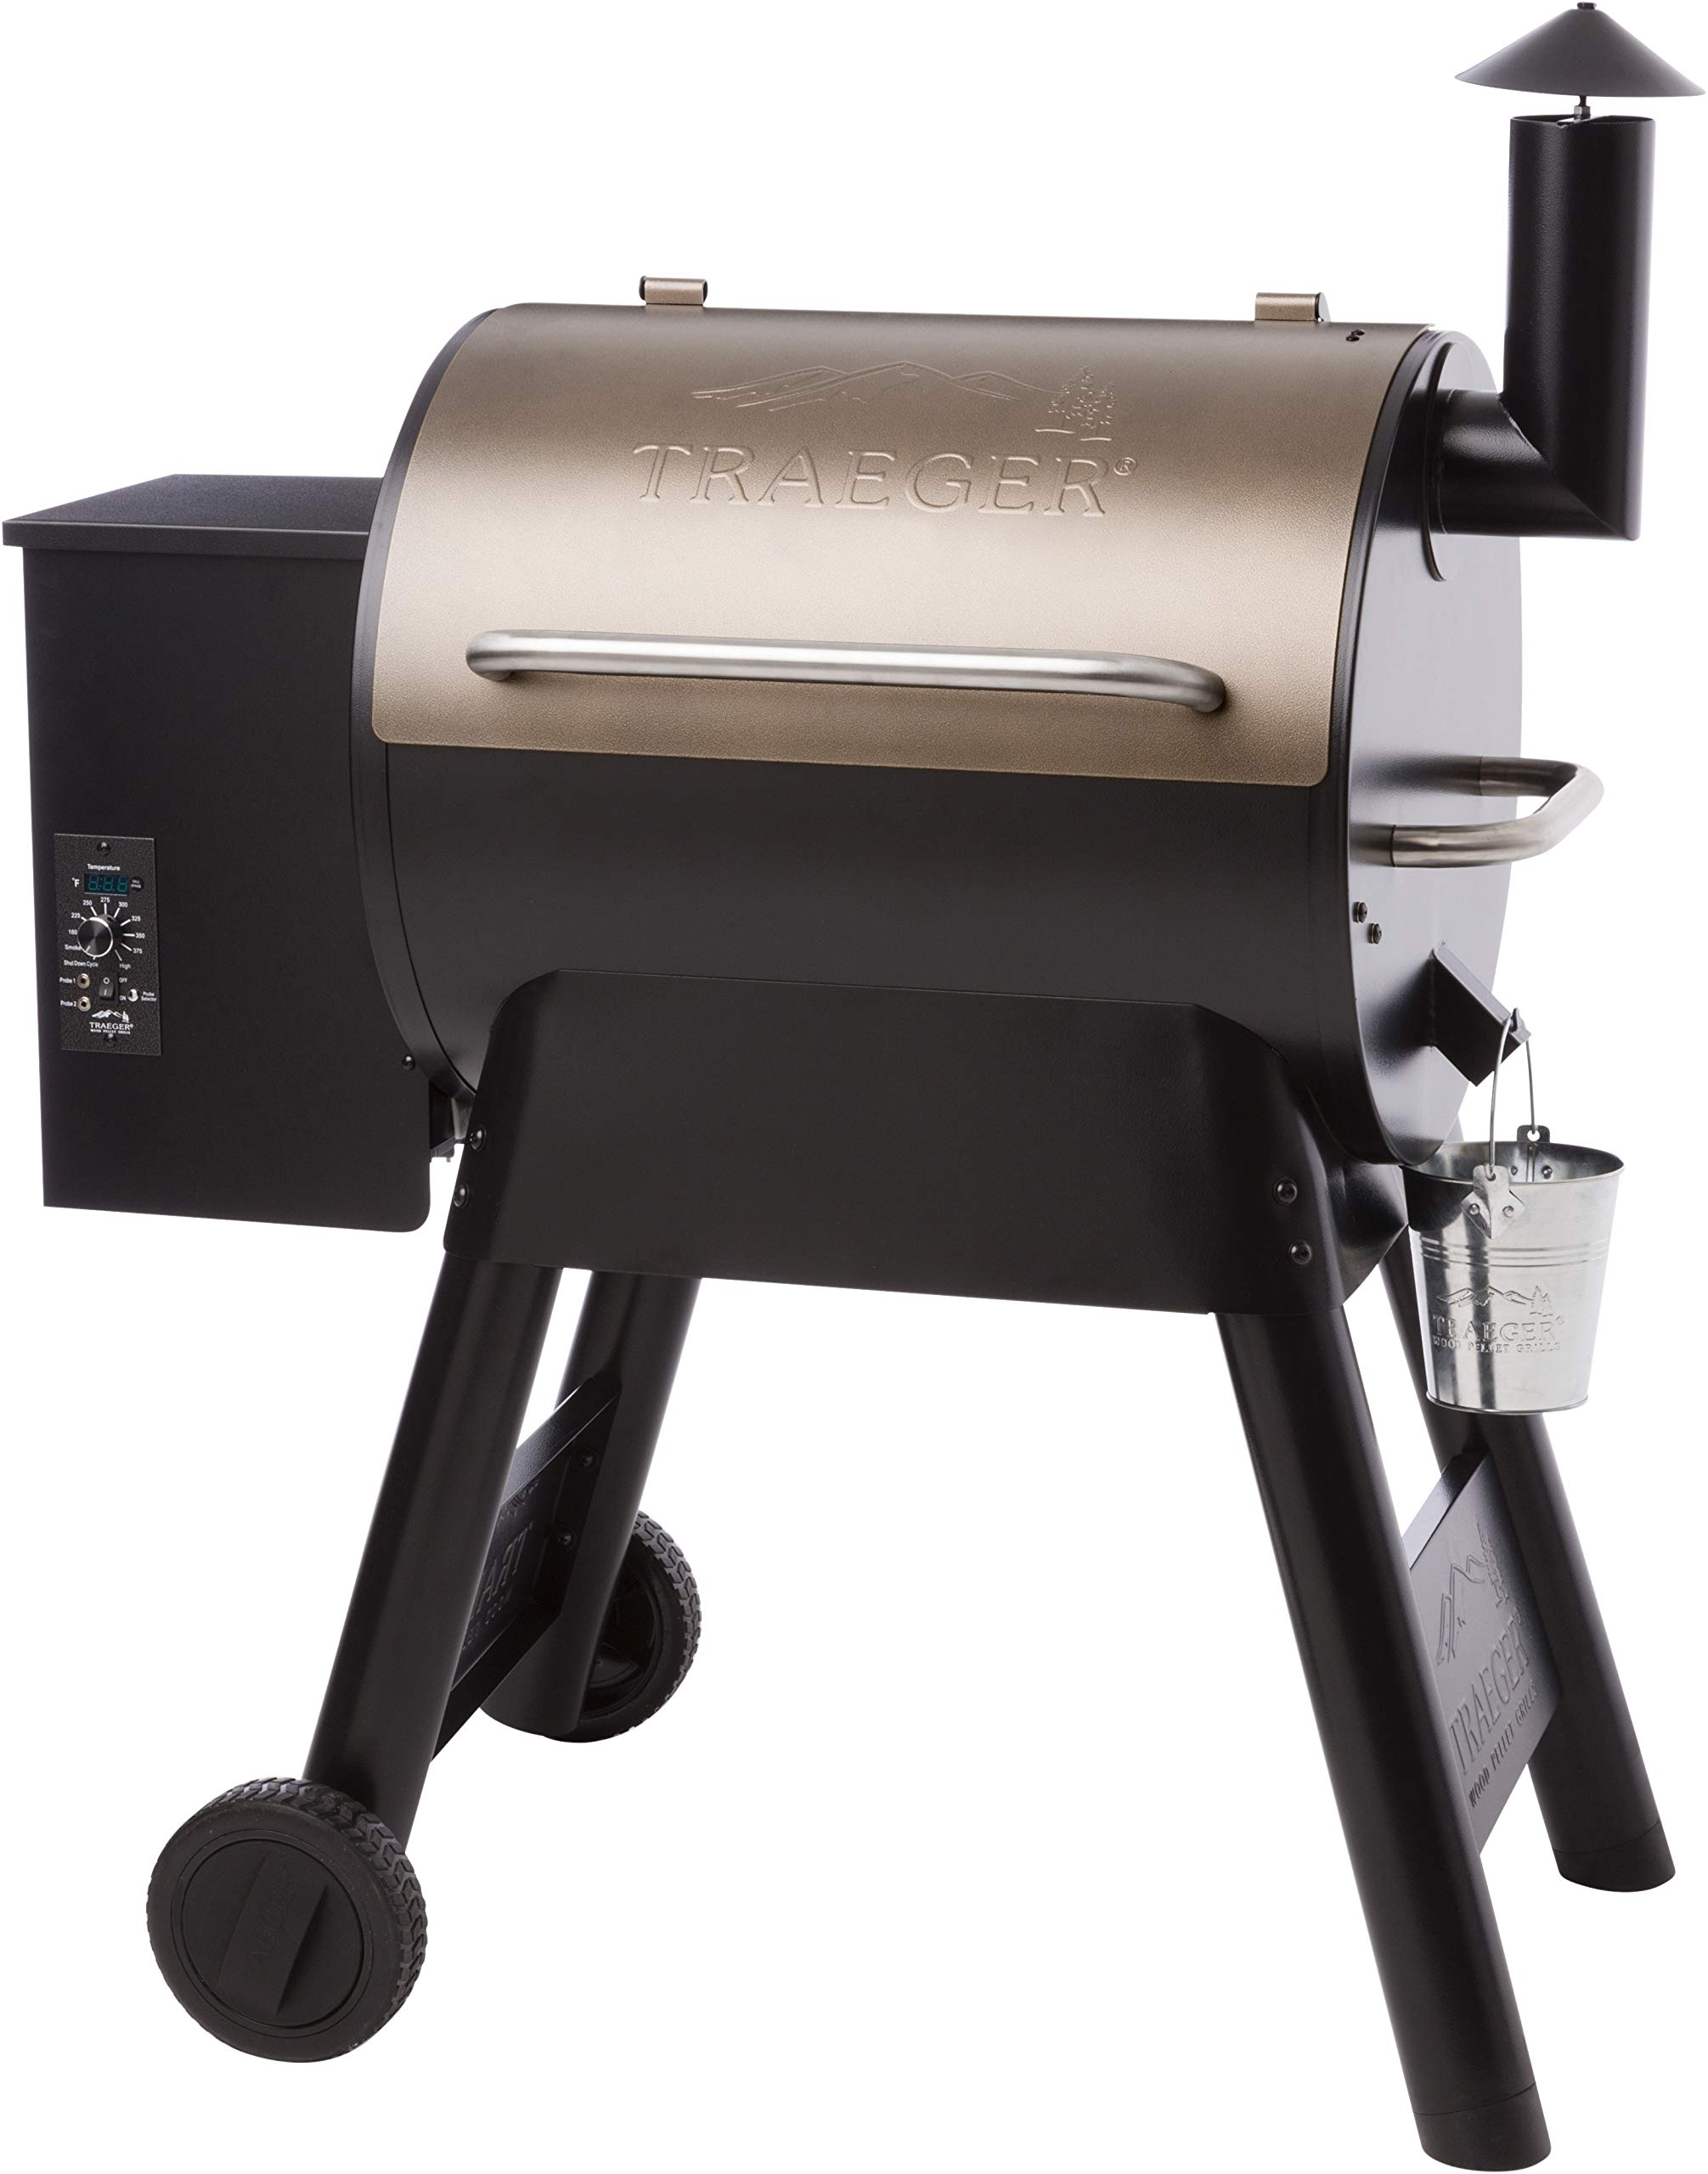 Traeger Grills TFB57PZBO Pro Series 22 Pellet Grill and Smoker, 572 Sq. In. Cooking Capacity, Bronze by Traeger